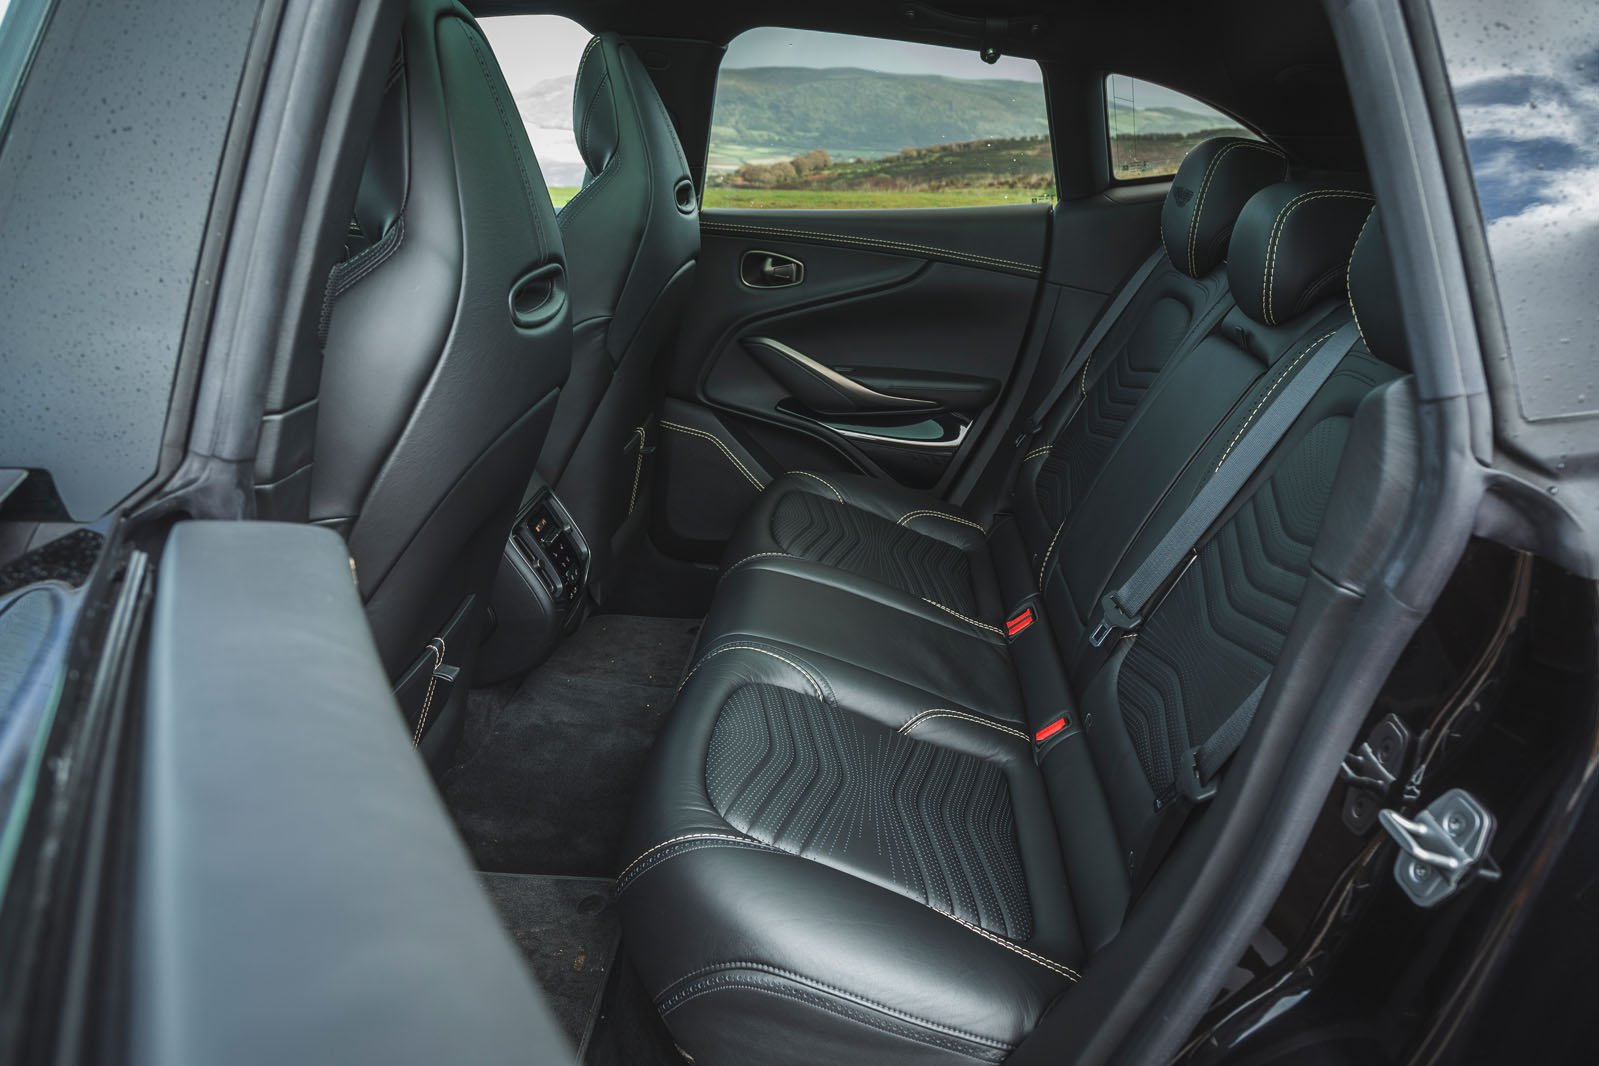 Aston Martin DBX 2020 rear seats